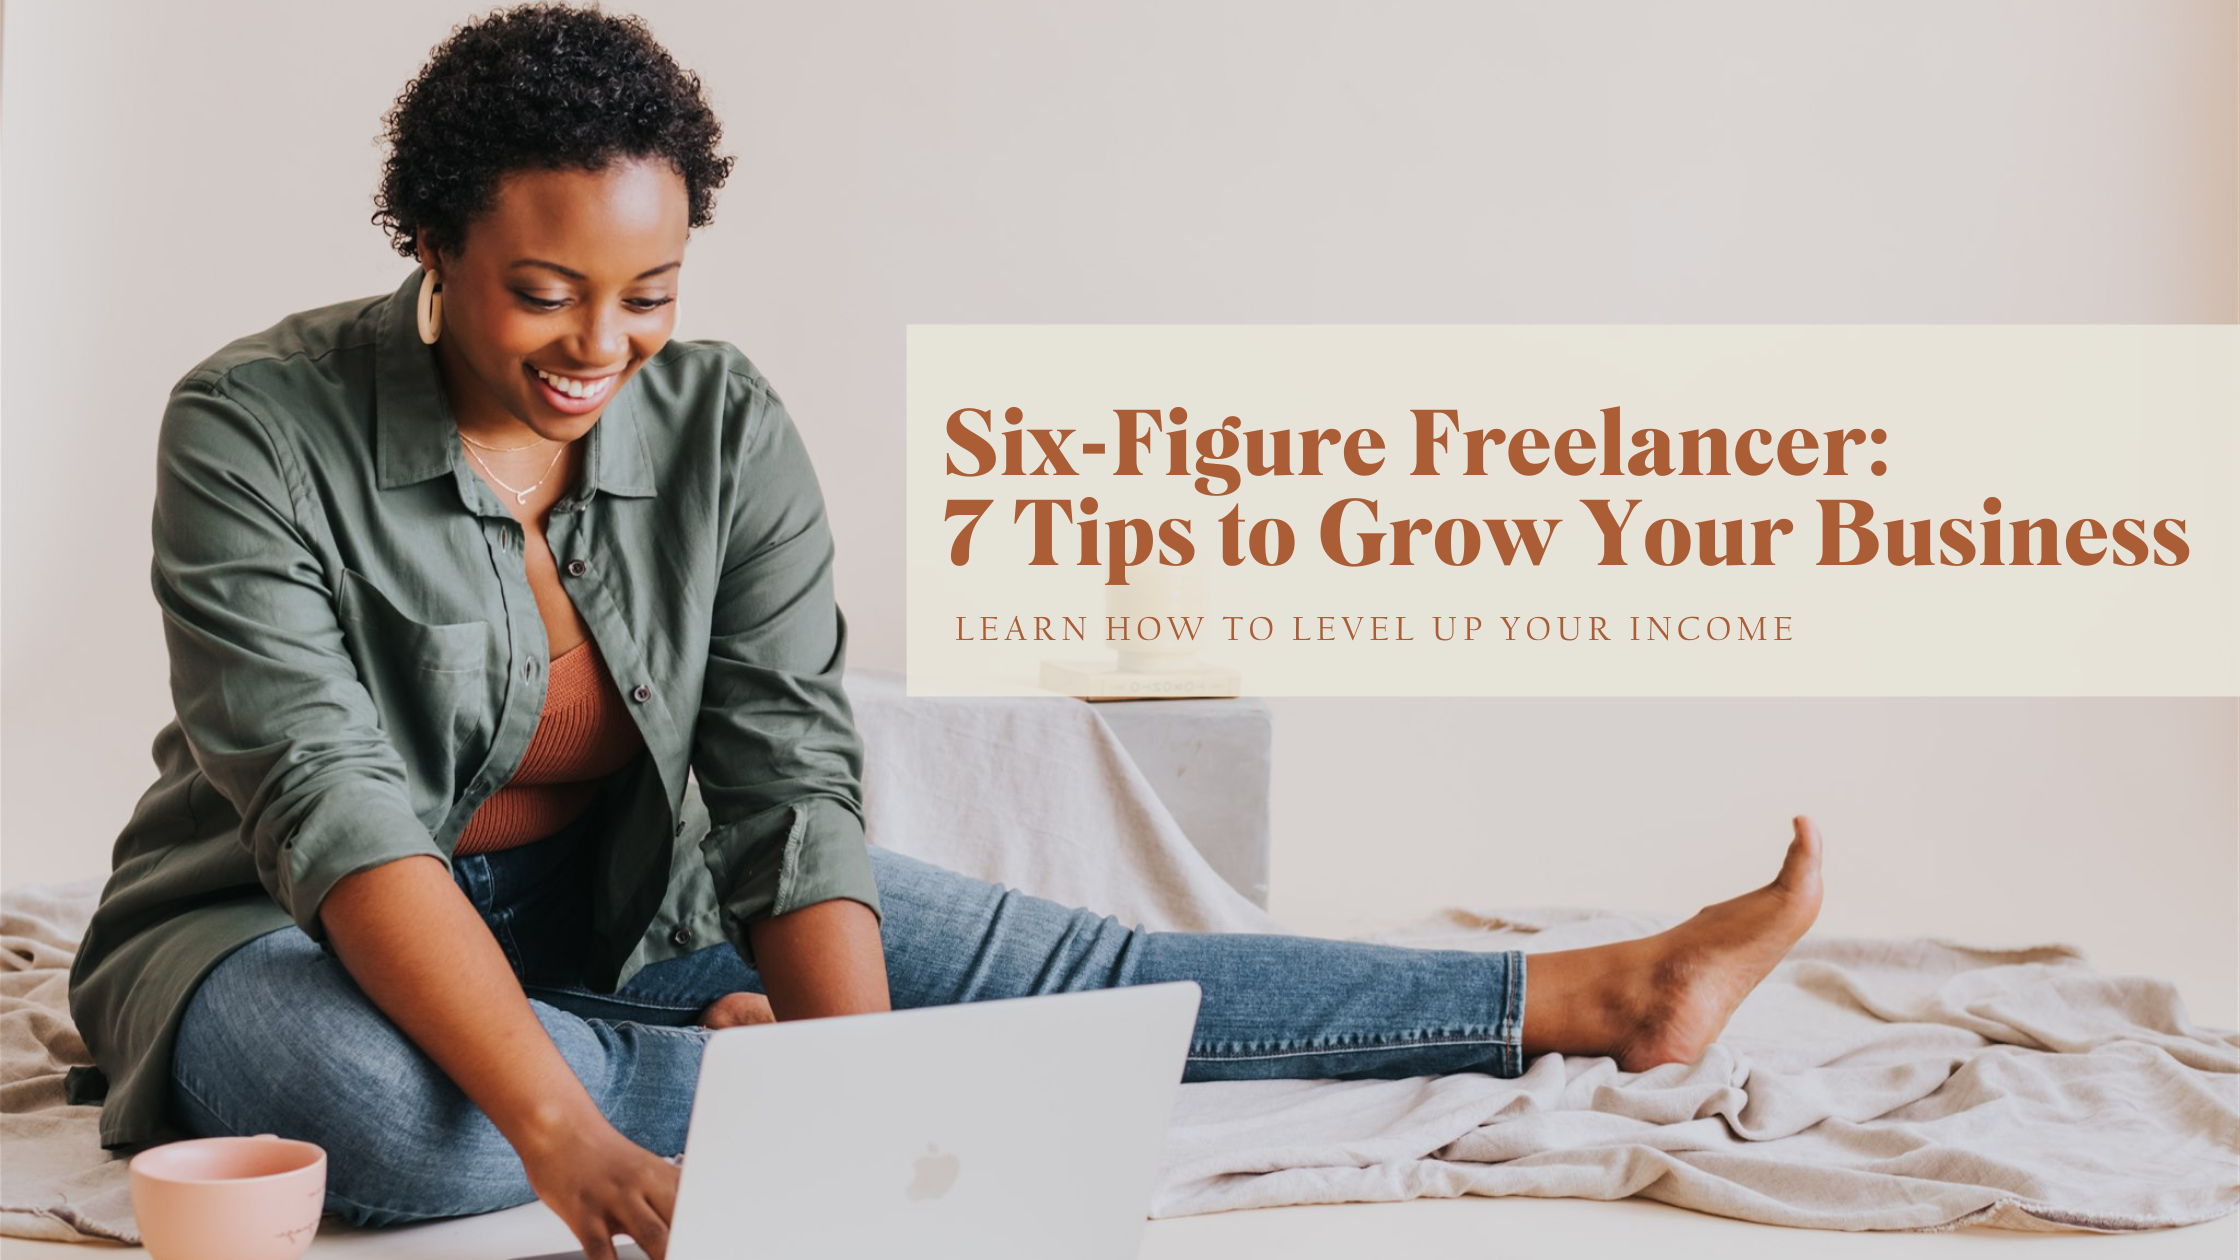 Six-Figure Freelancer: 7 Tips to Grow Your Business